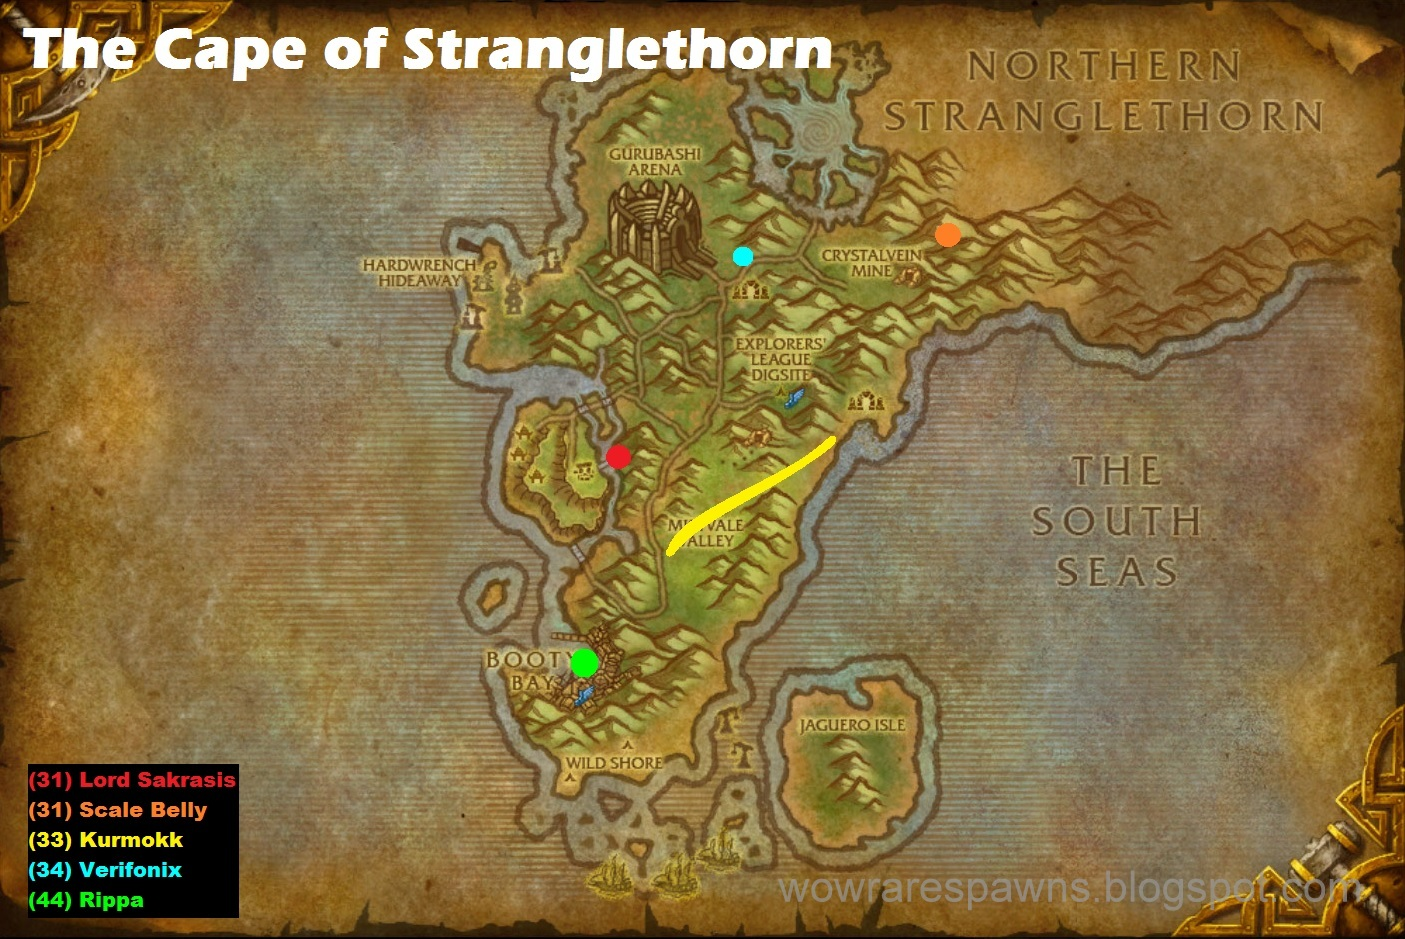 WoW Rare Spawns: The Cape of Stranglethorn Rare Spawns